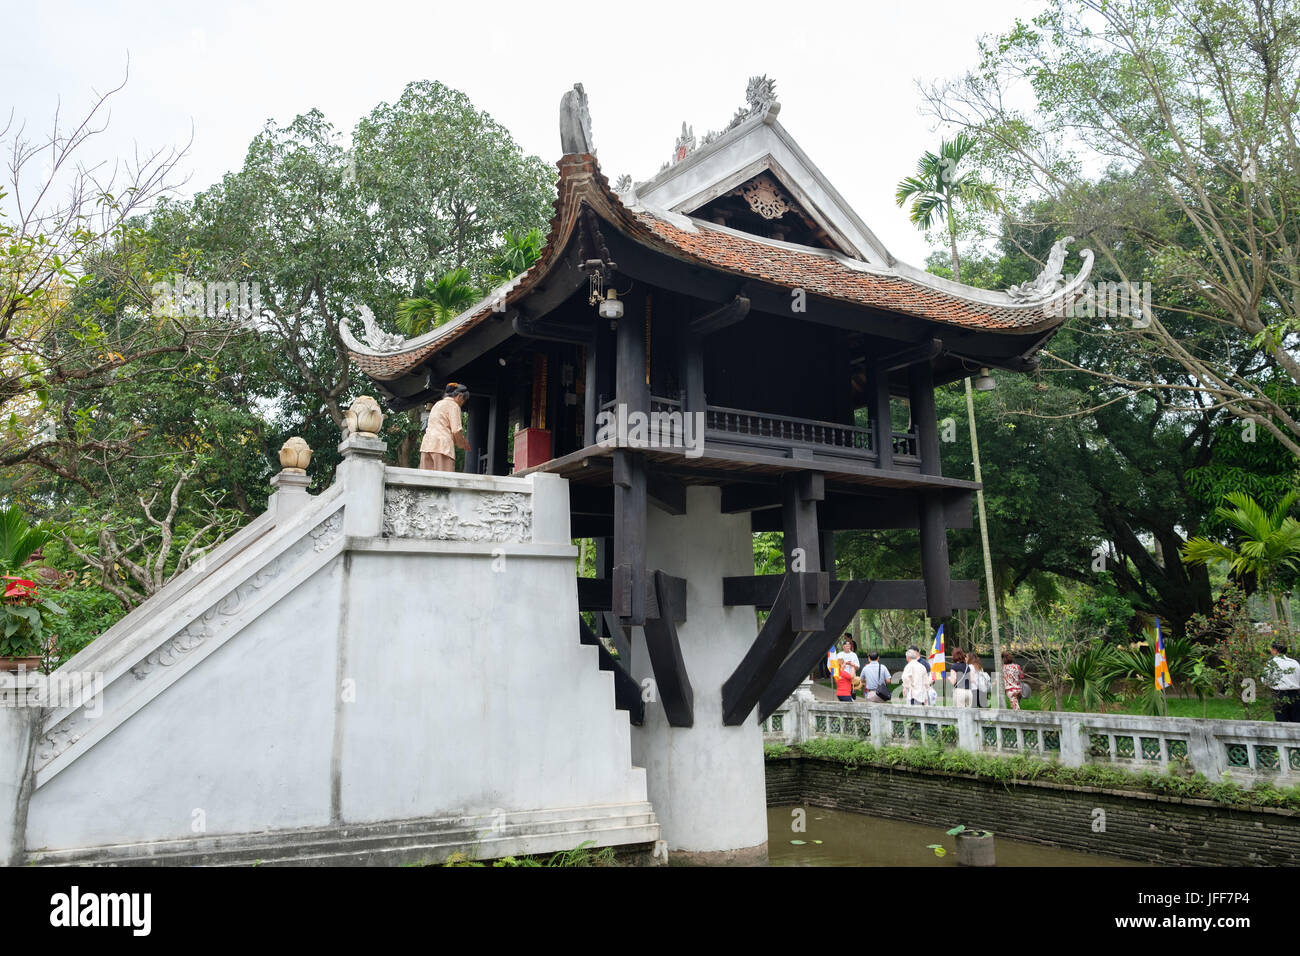 One Pillar Pagoda in Hanoi, Vietnam, Asia Stock Photo